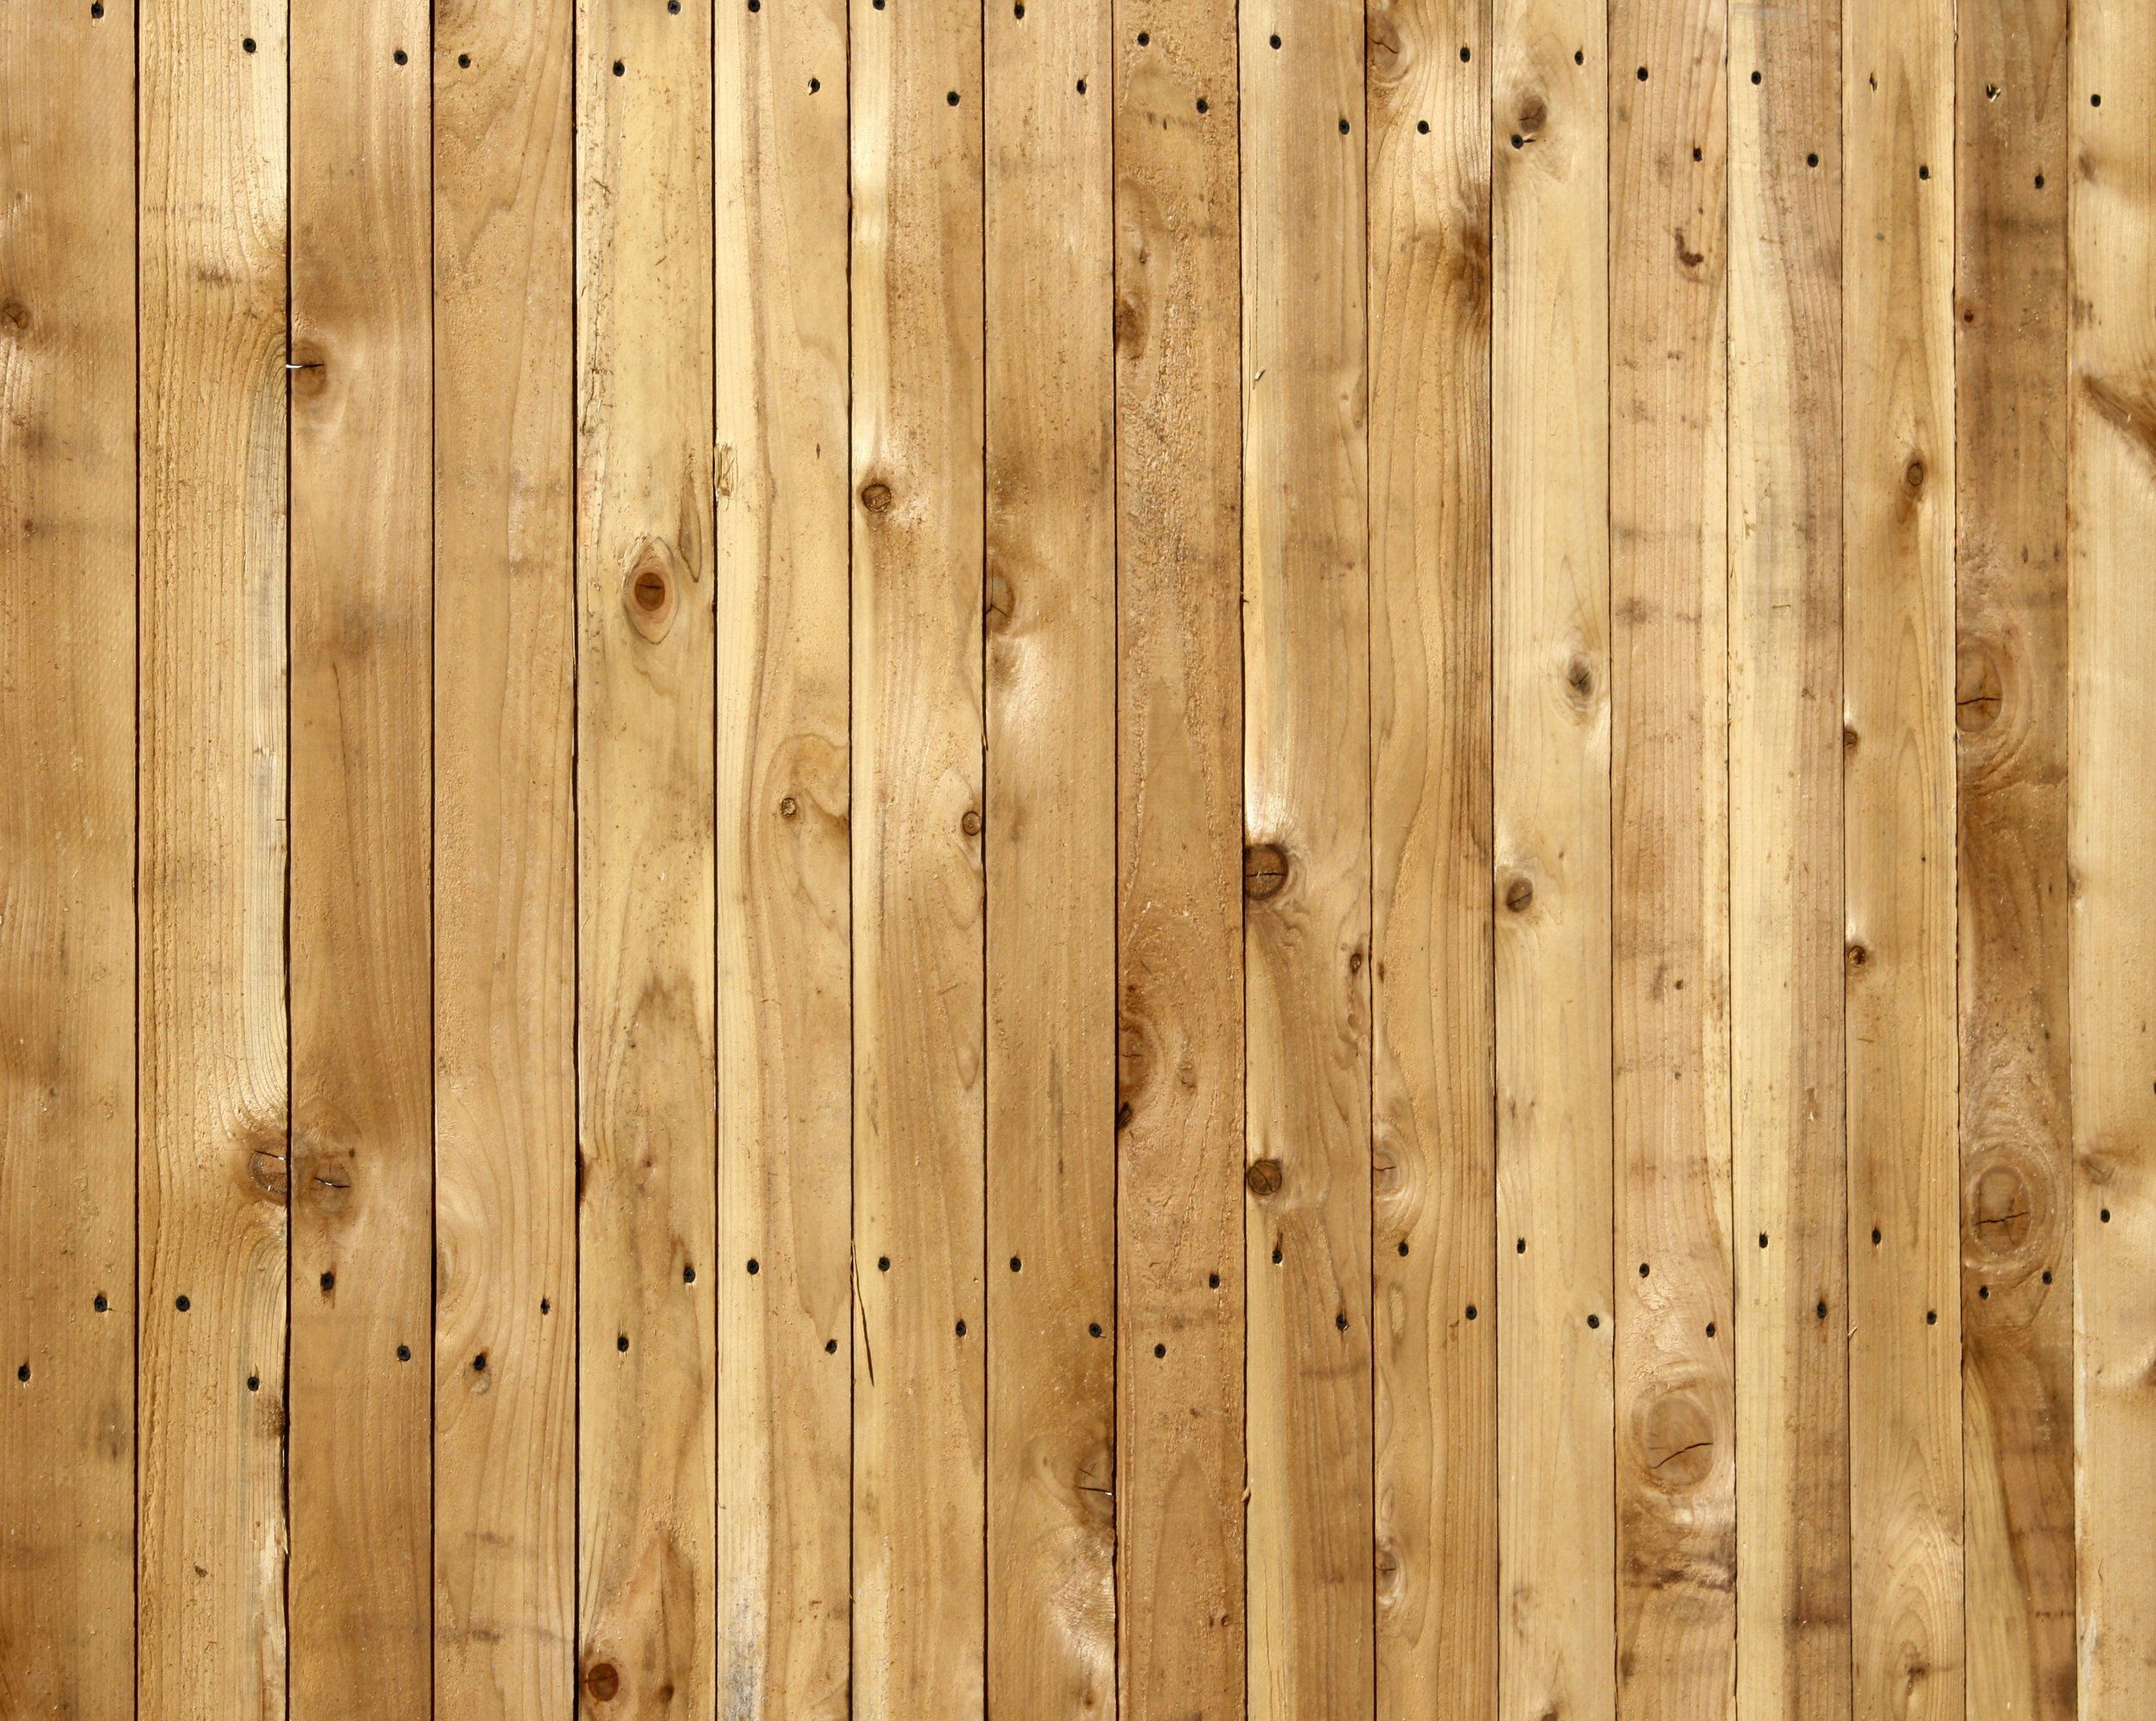 30 amazing free wood texture backgrounds | .·t e x t wood